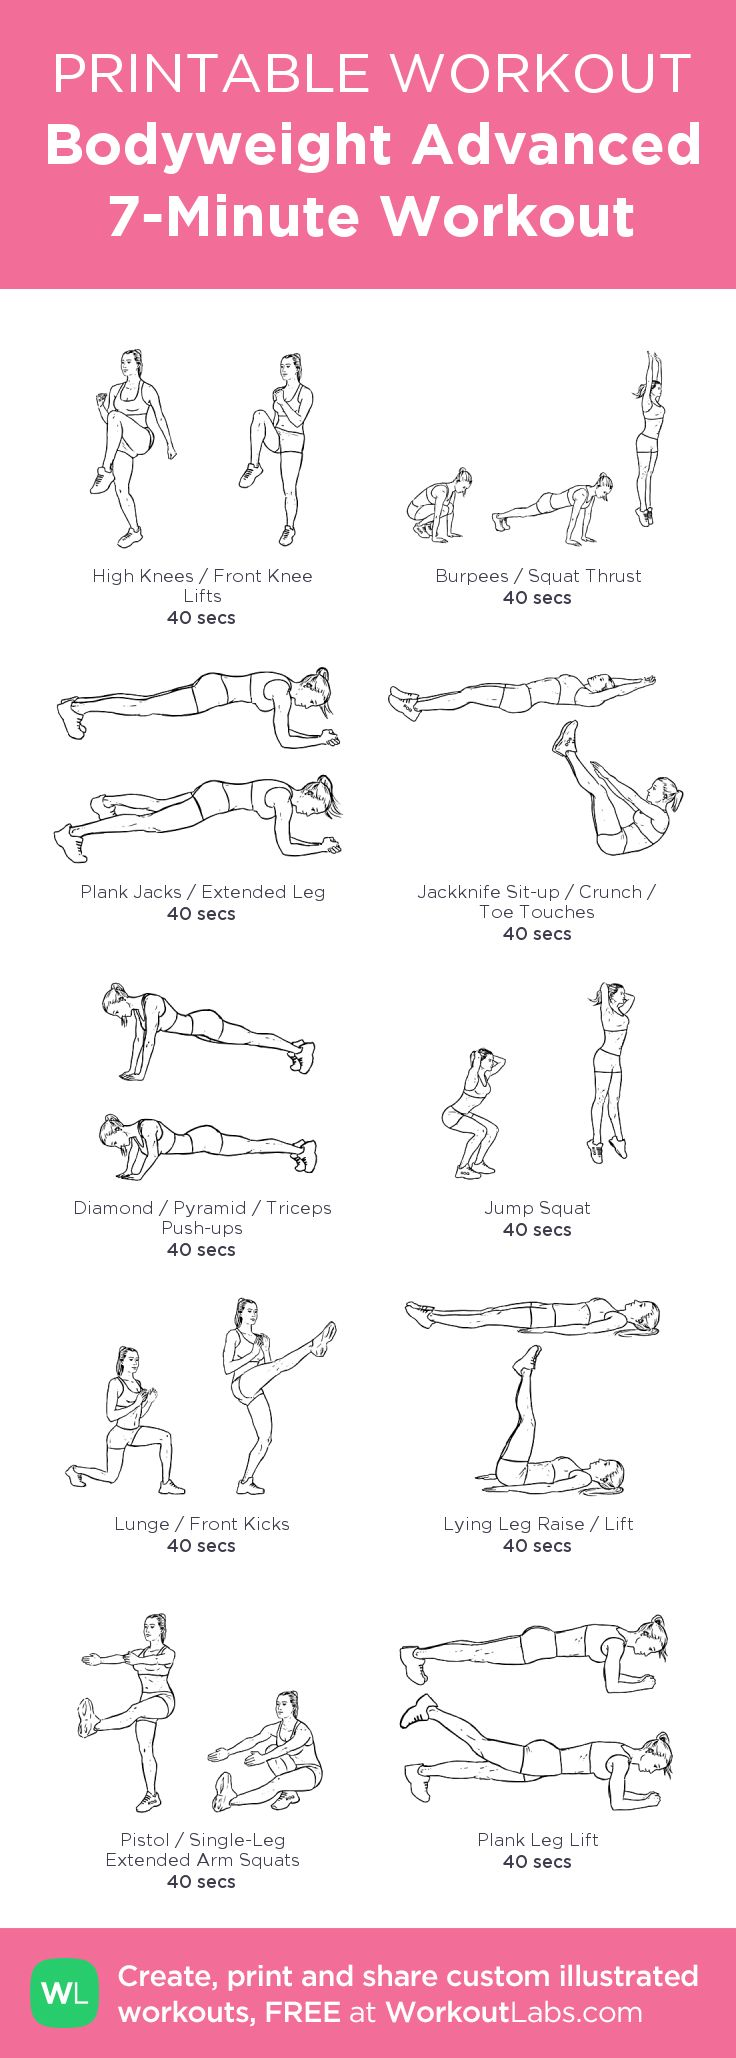 Bodyweight Advanced 7-Minute Workout you can do at home • Click through to customize and download as a FREE PDF! #customworkout